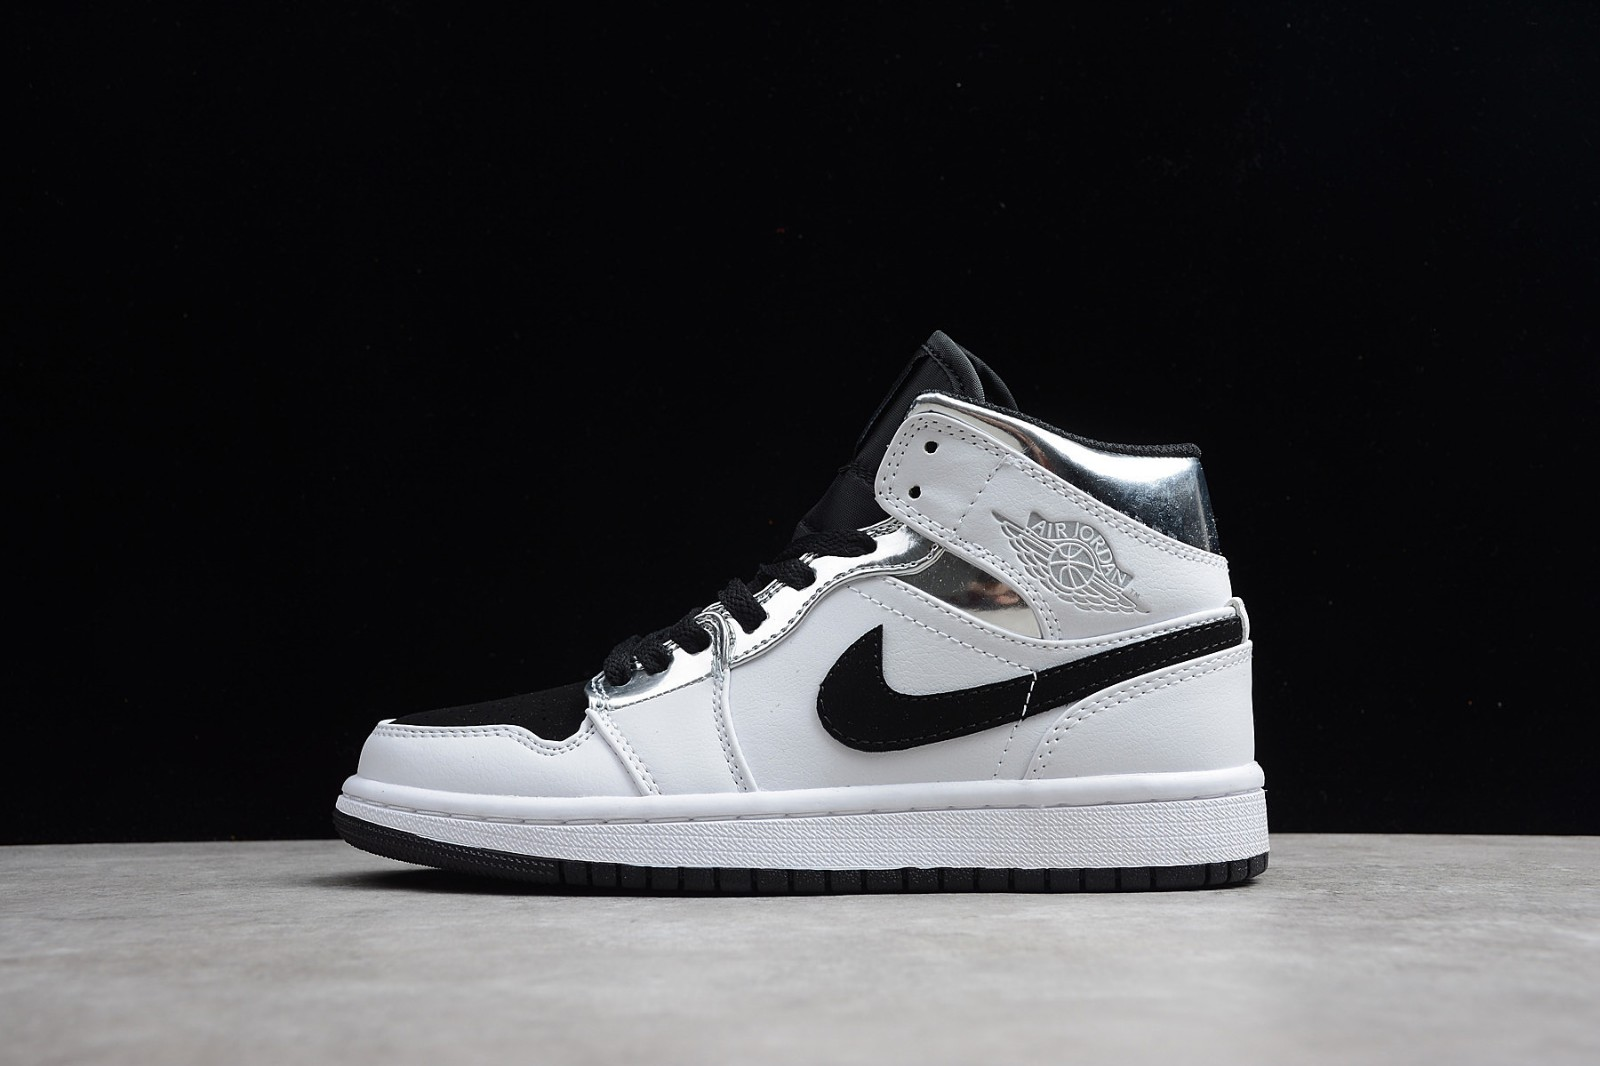 ec59ad6cbe36b5 Prev Nike Air Jordan 1 Mid White Silver Black 554724-121. Zoom. Move your  mouse over image or click to enlarge. Next. CLICK IMAGE TO ENLARGE